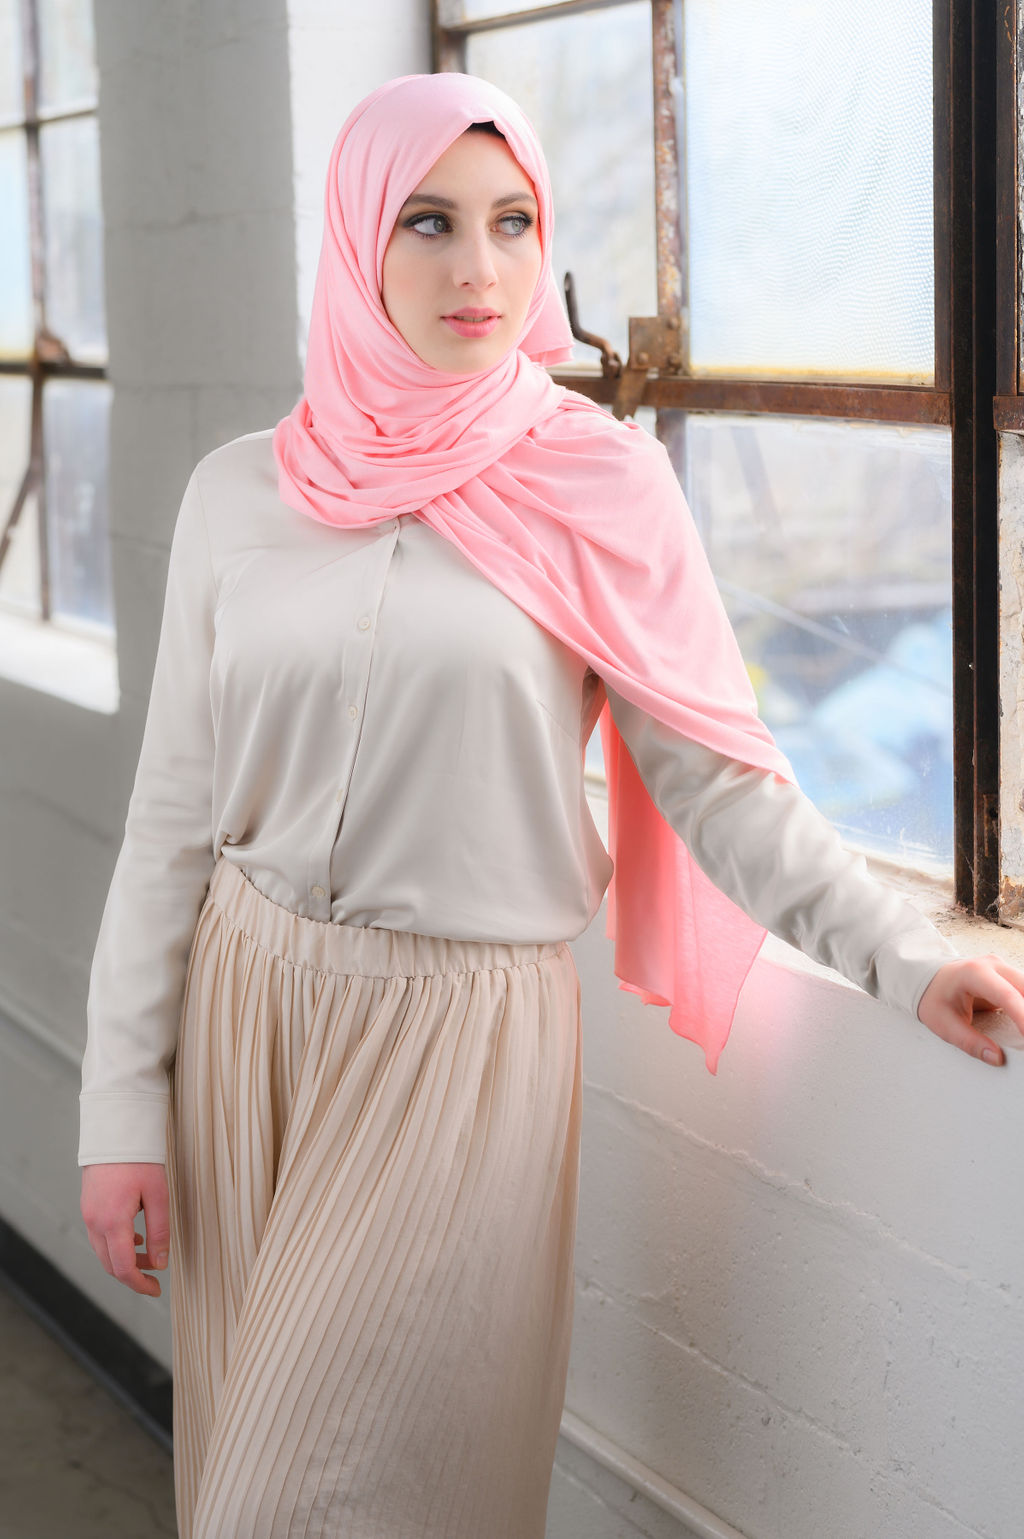 How to Wear a Hijab   A Complete Guideline by Hijab Square